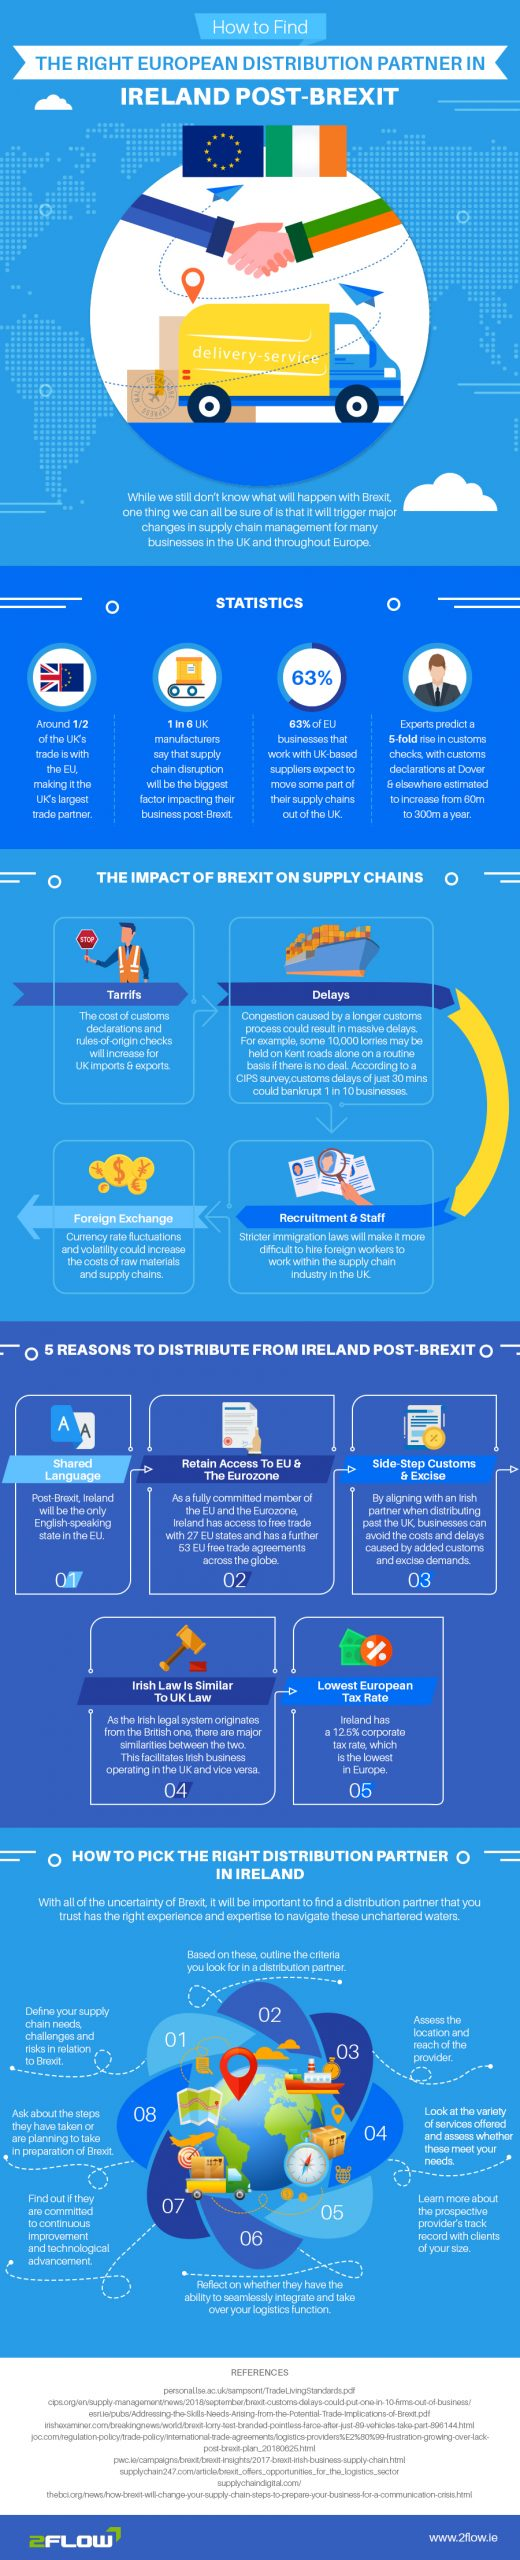 how to find the right european distribution partner in ireland post brexit